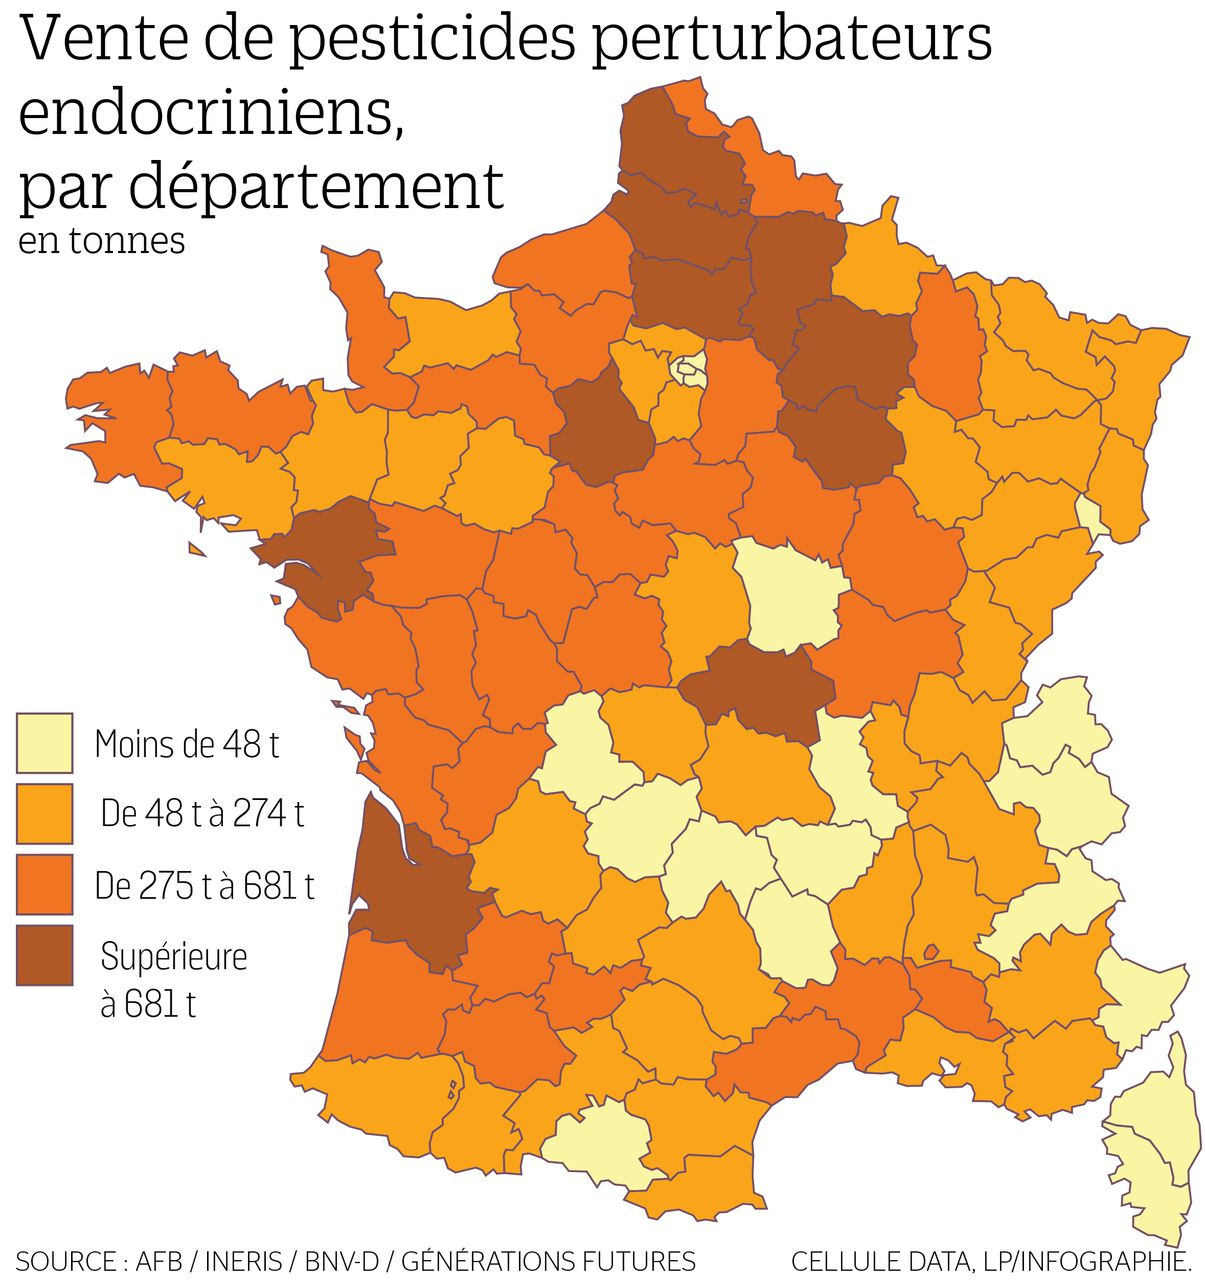 La Carte De France Des Départements Les Plus Consommateurs serapportantà Plan De La France Par Departement